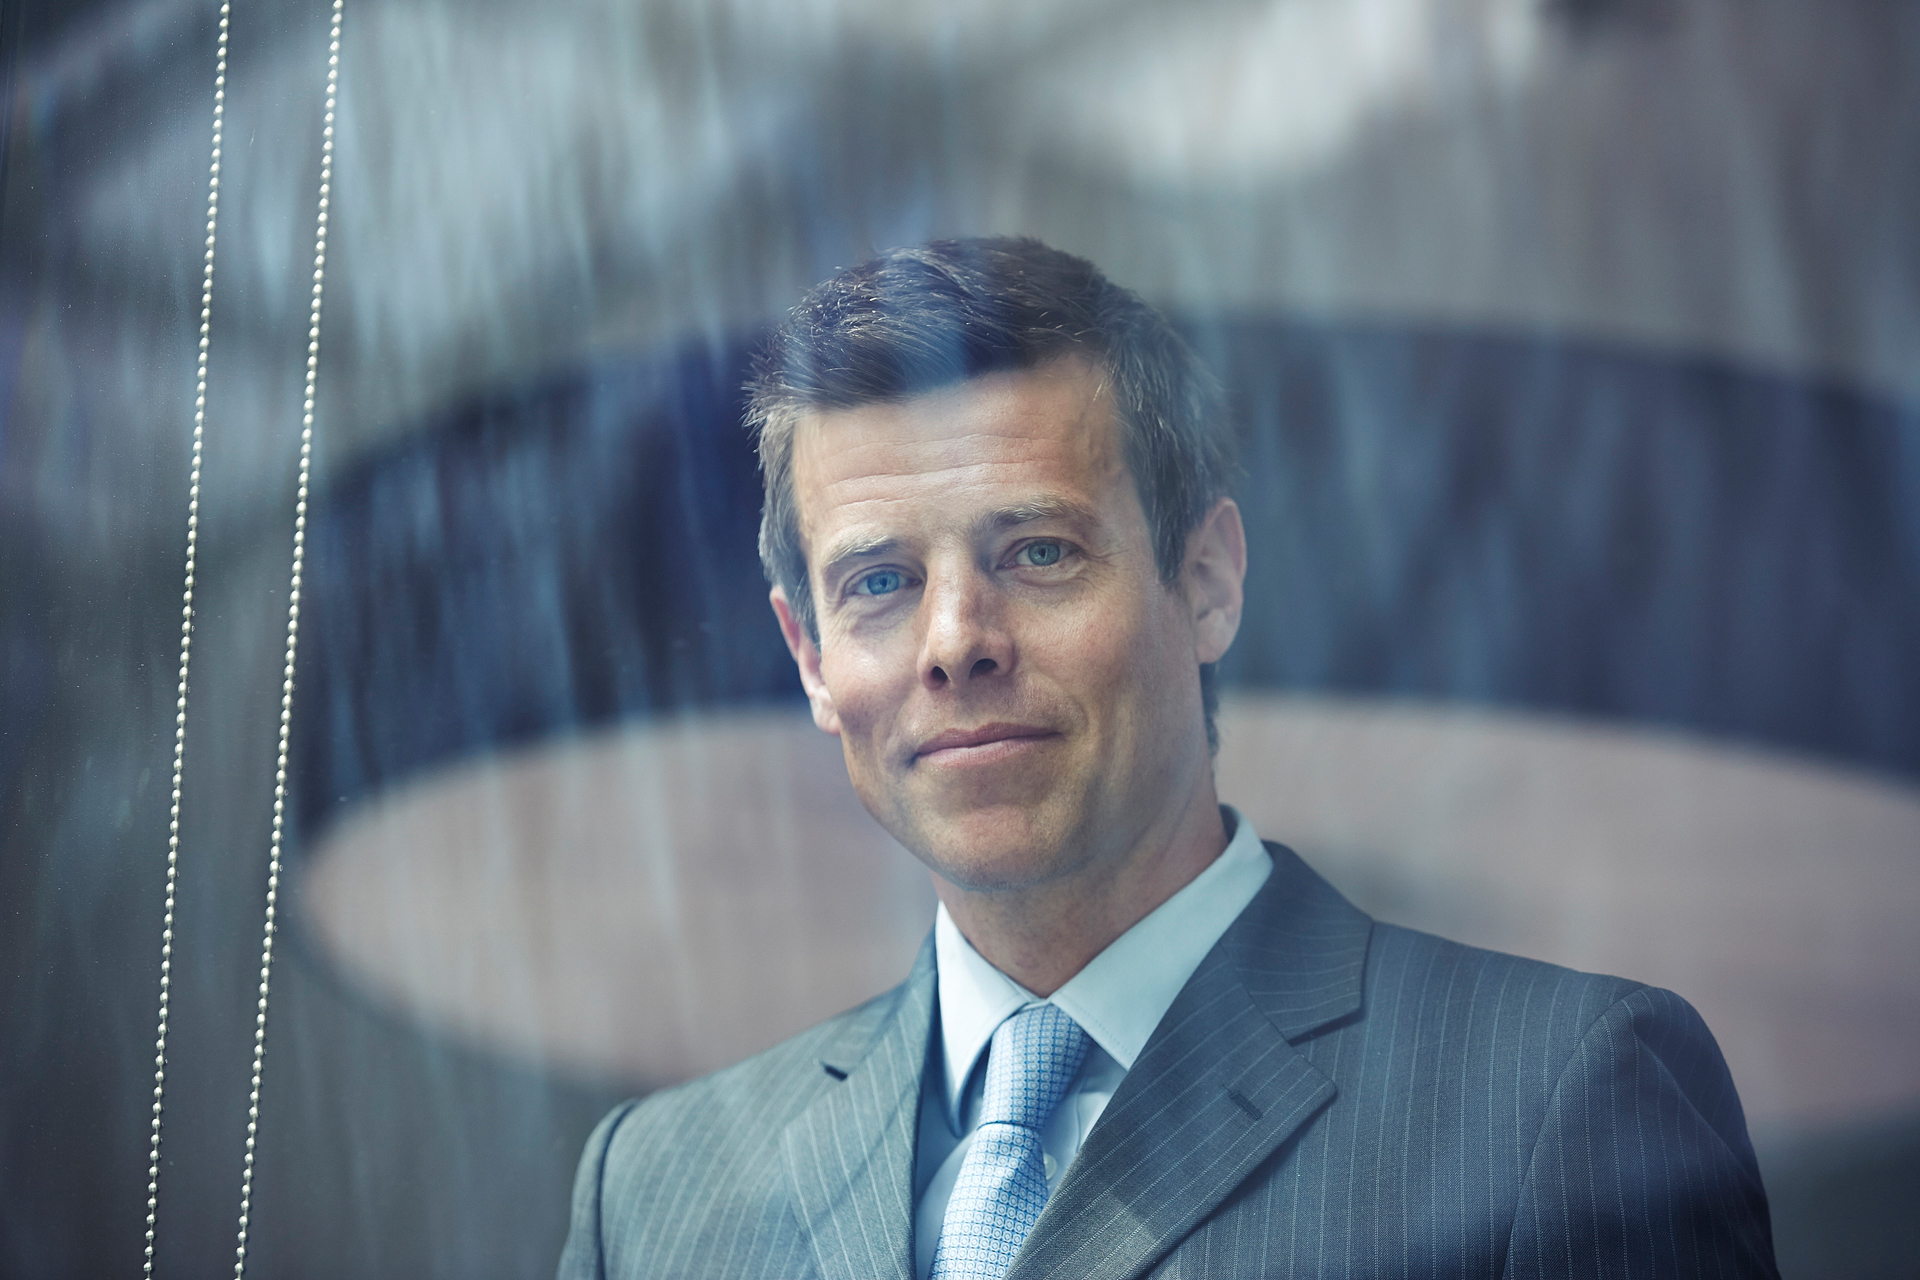 corporate photography portrait of business man smiling looking at camera